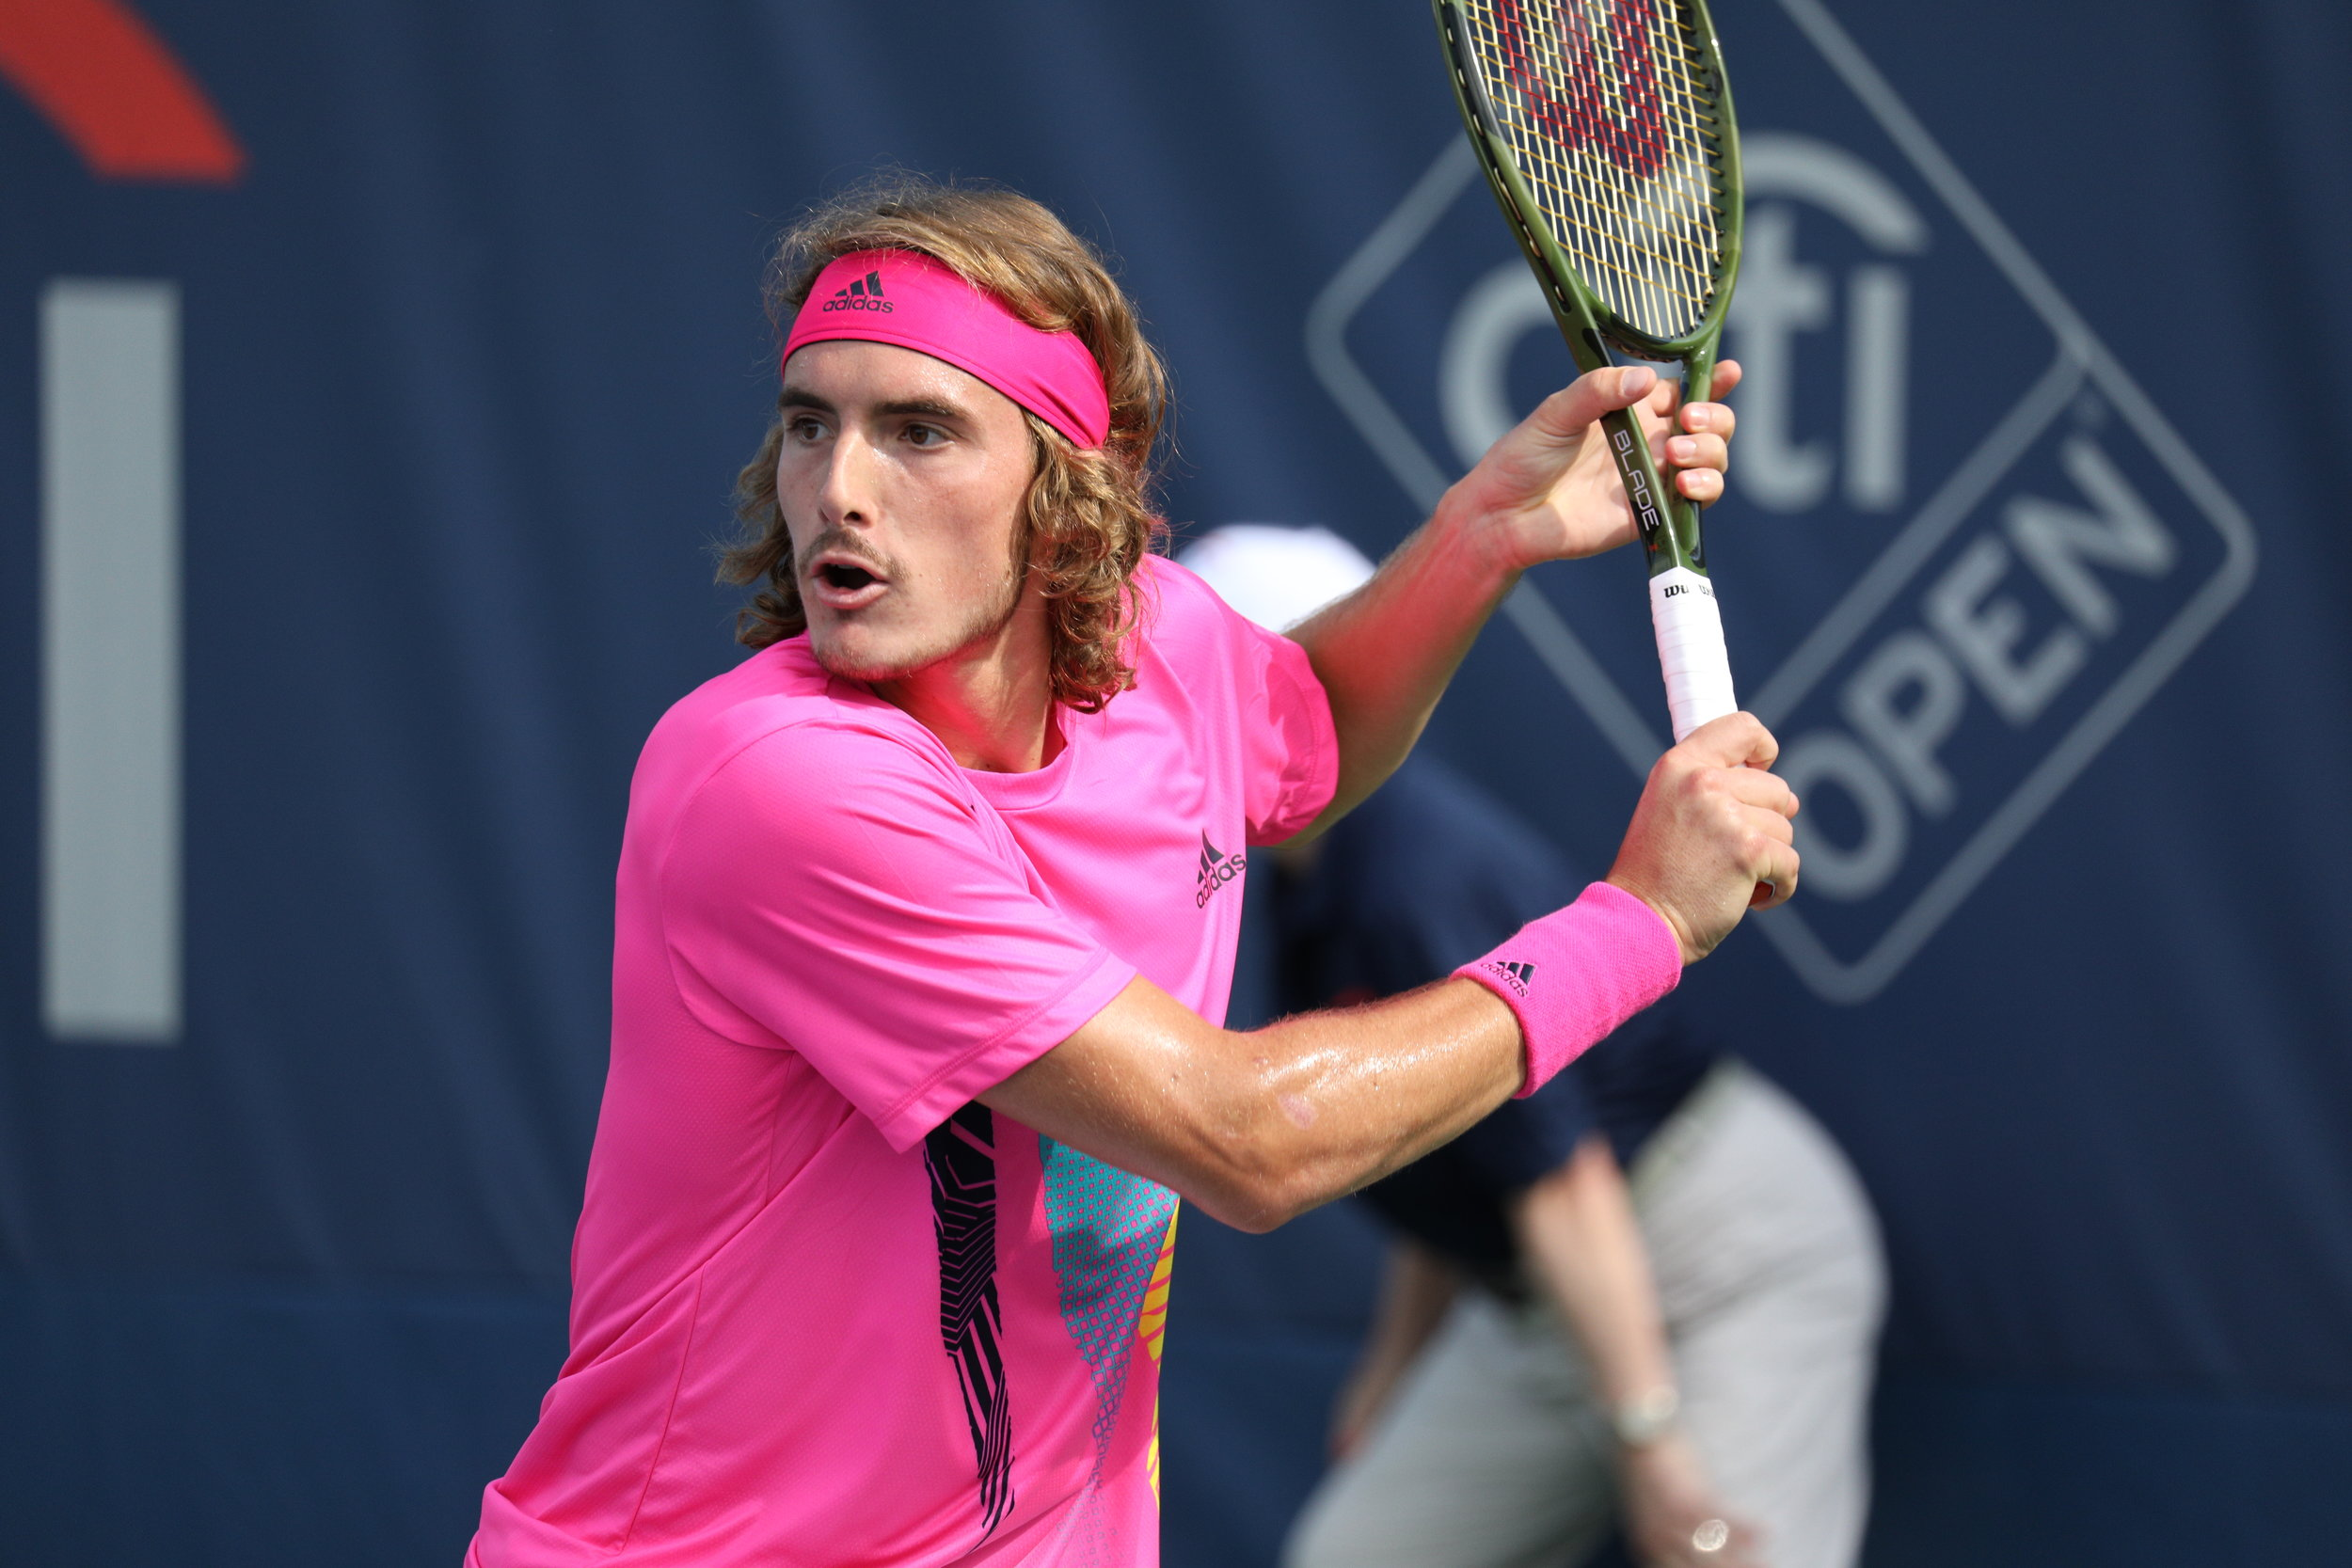 Tsitsipas gained an unlikely Doubles partner during the 2019 Citi Open in Washington